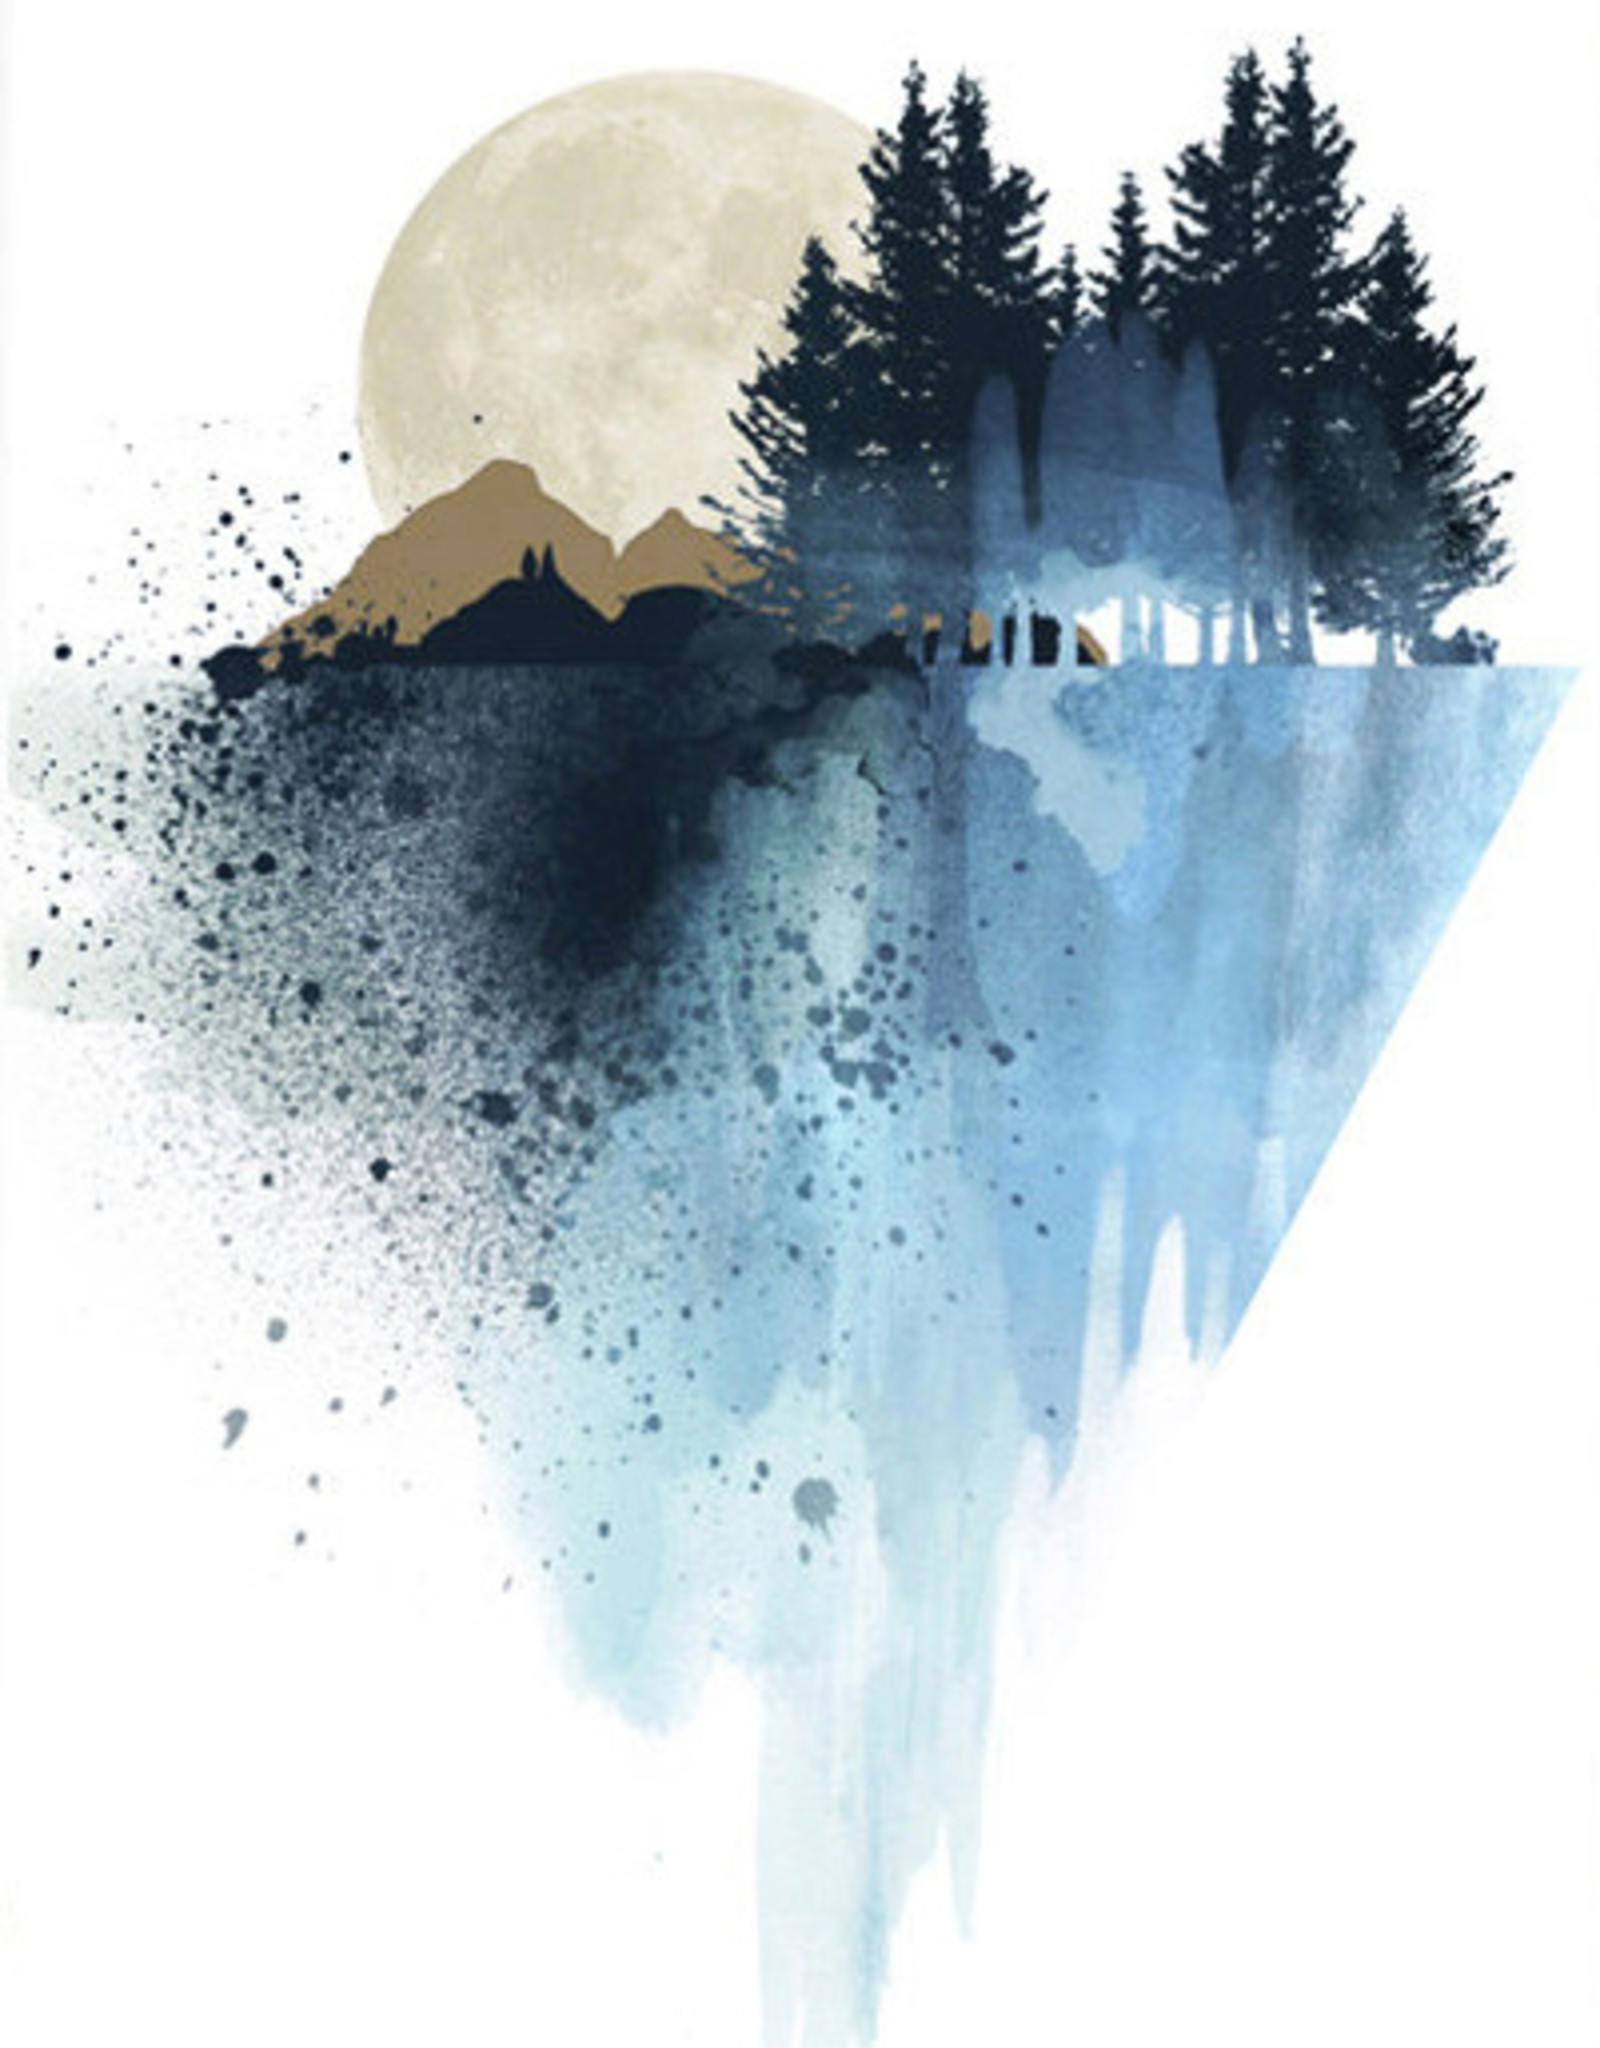 Tamara S Art Class: Watercolour Moonlight Tues Aug 4